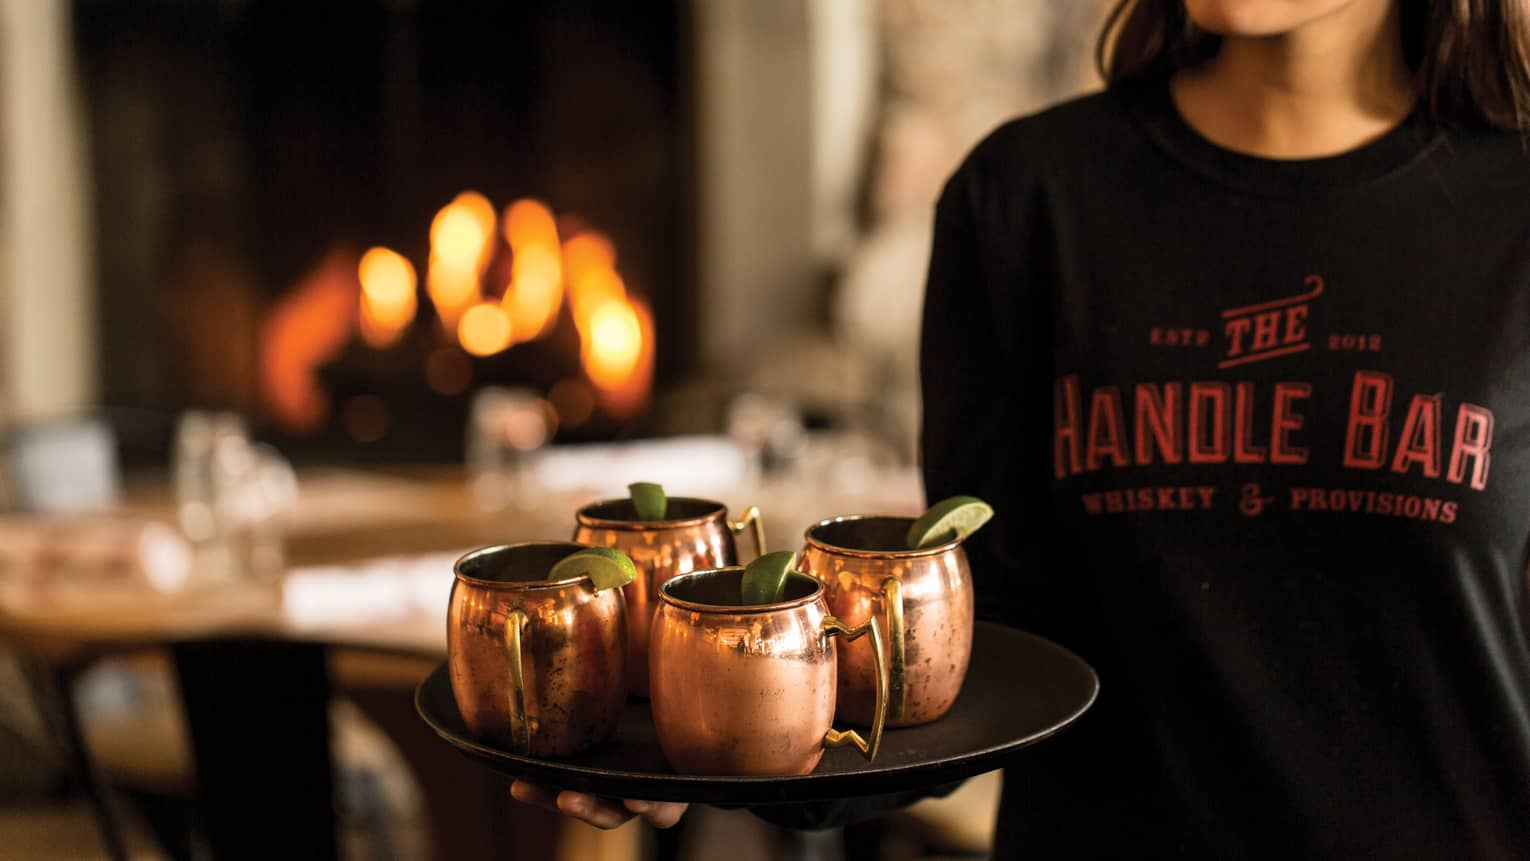 Server with The Handle Bar T-shirt holds tray with copper Moscow mule mugs, lime wedges